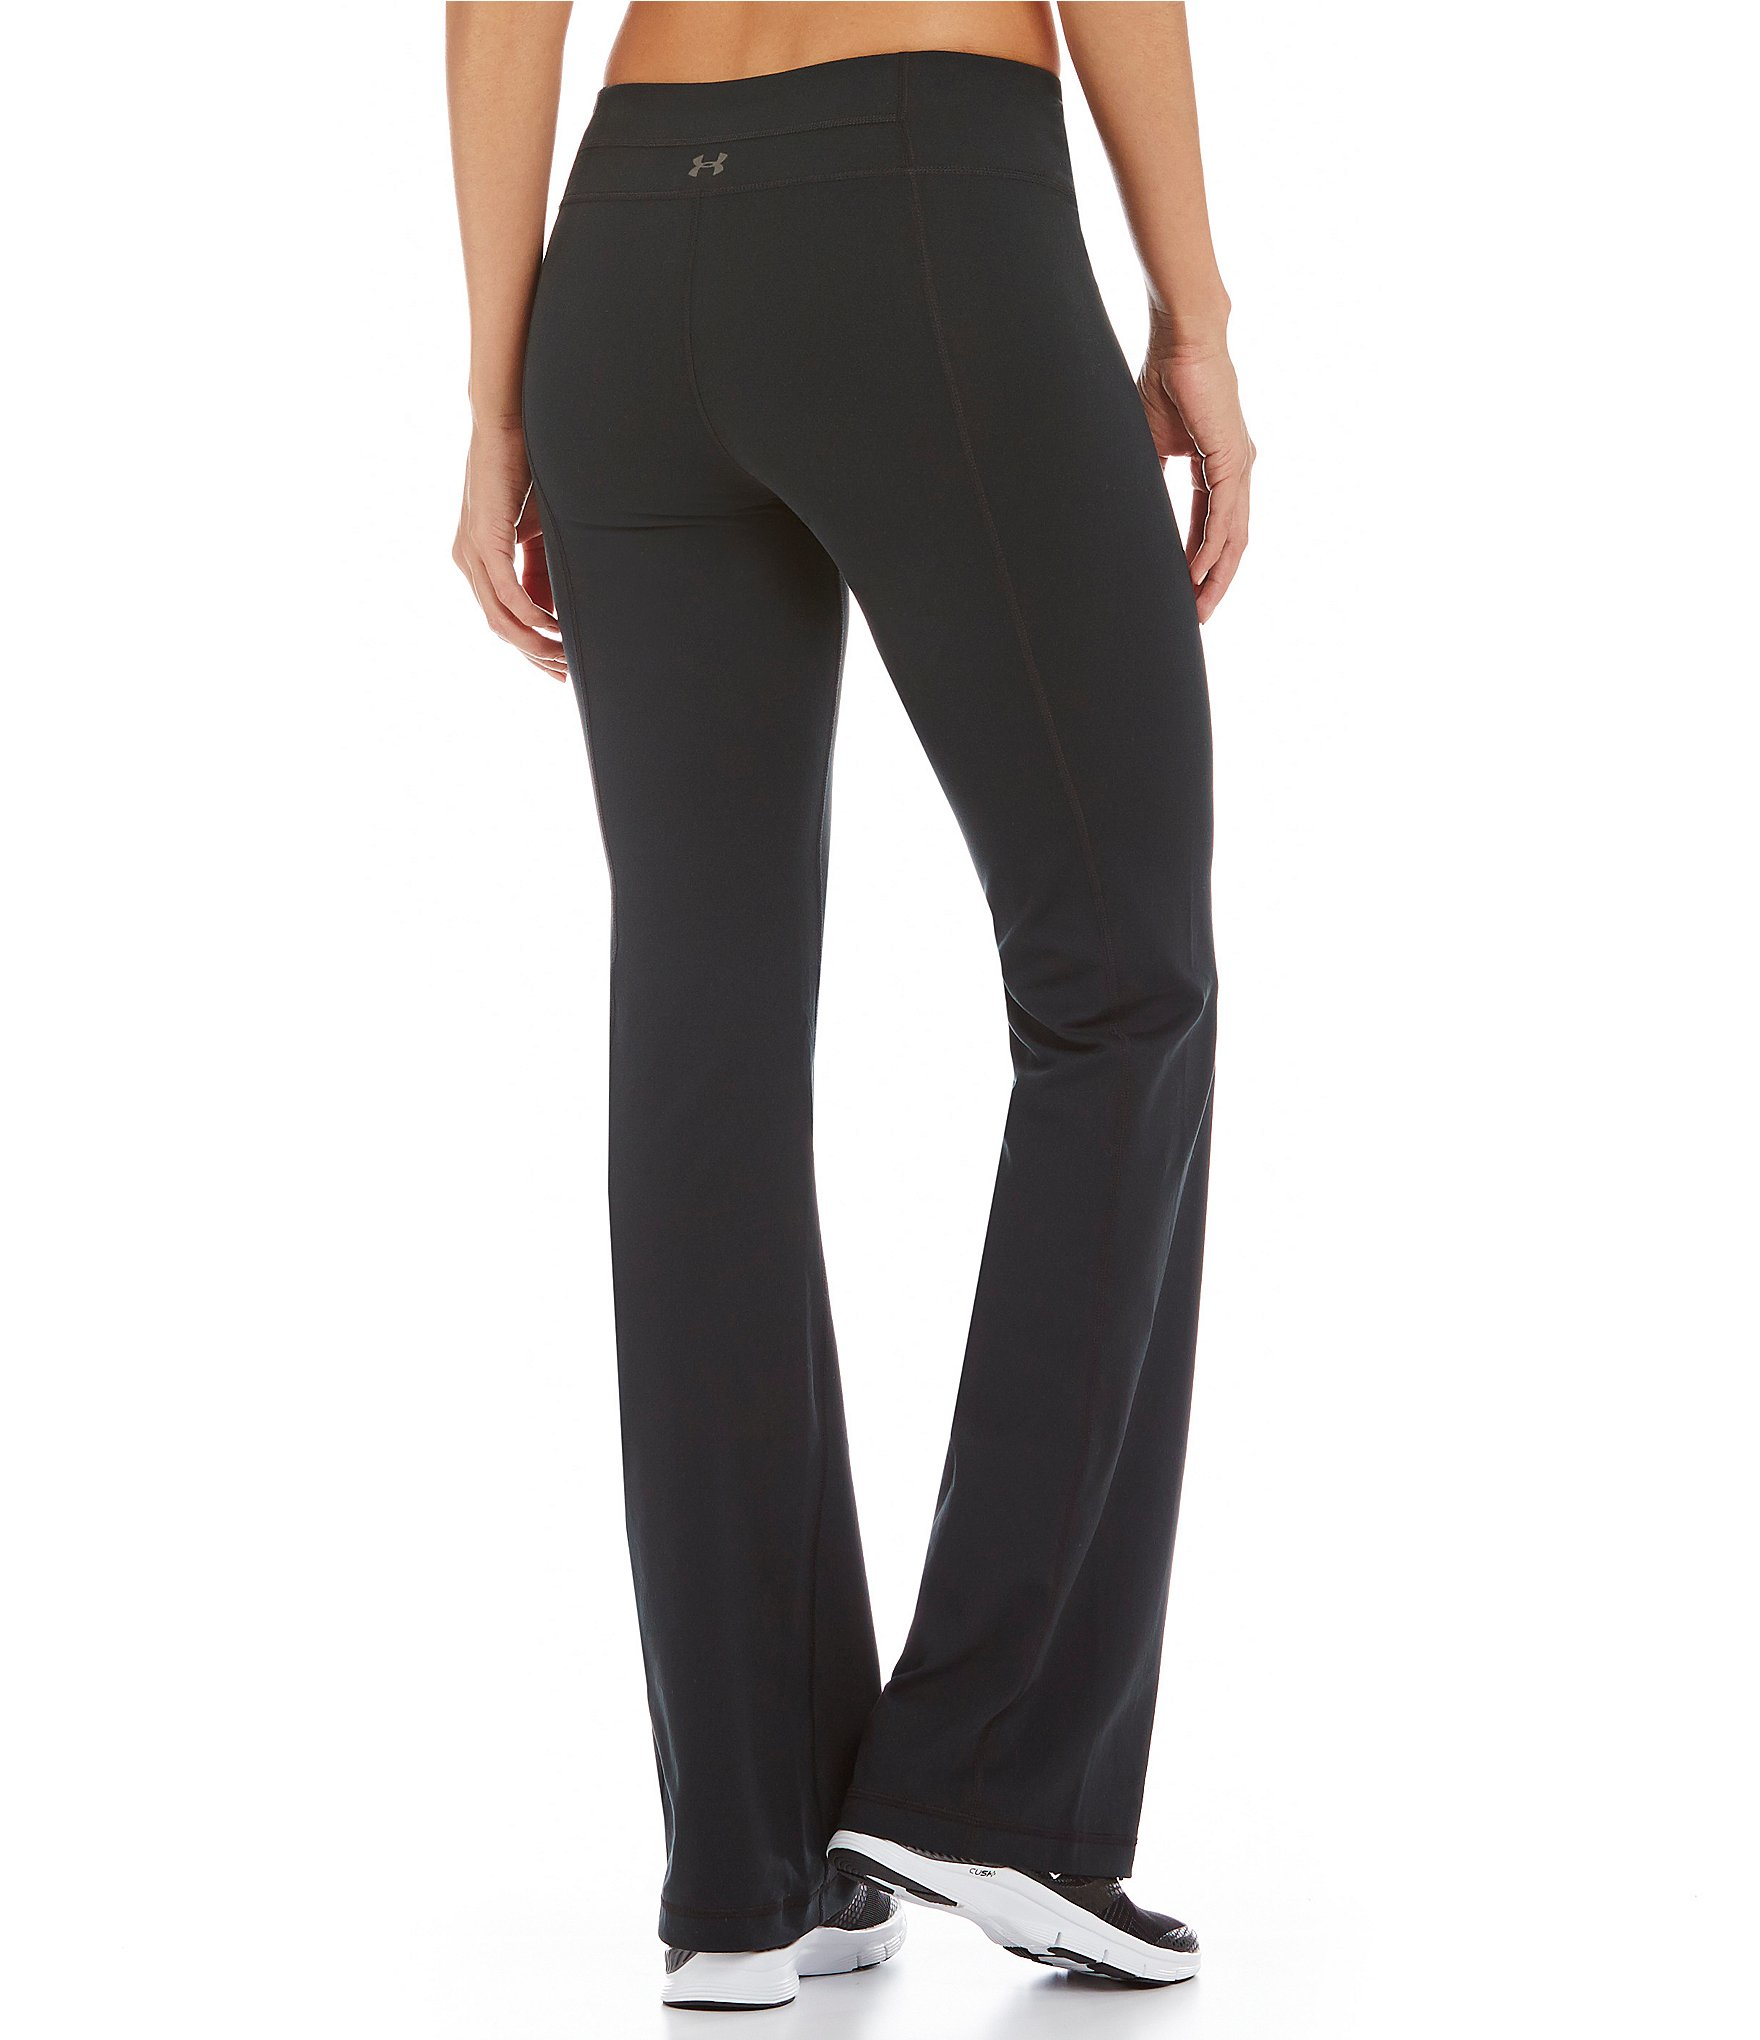 Lyst under armour perfect workout pants in black for Thrilla in manila shirt under armour